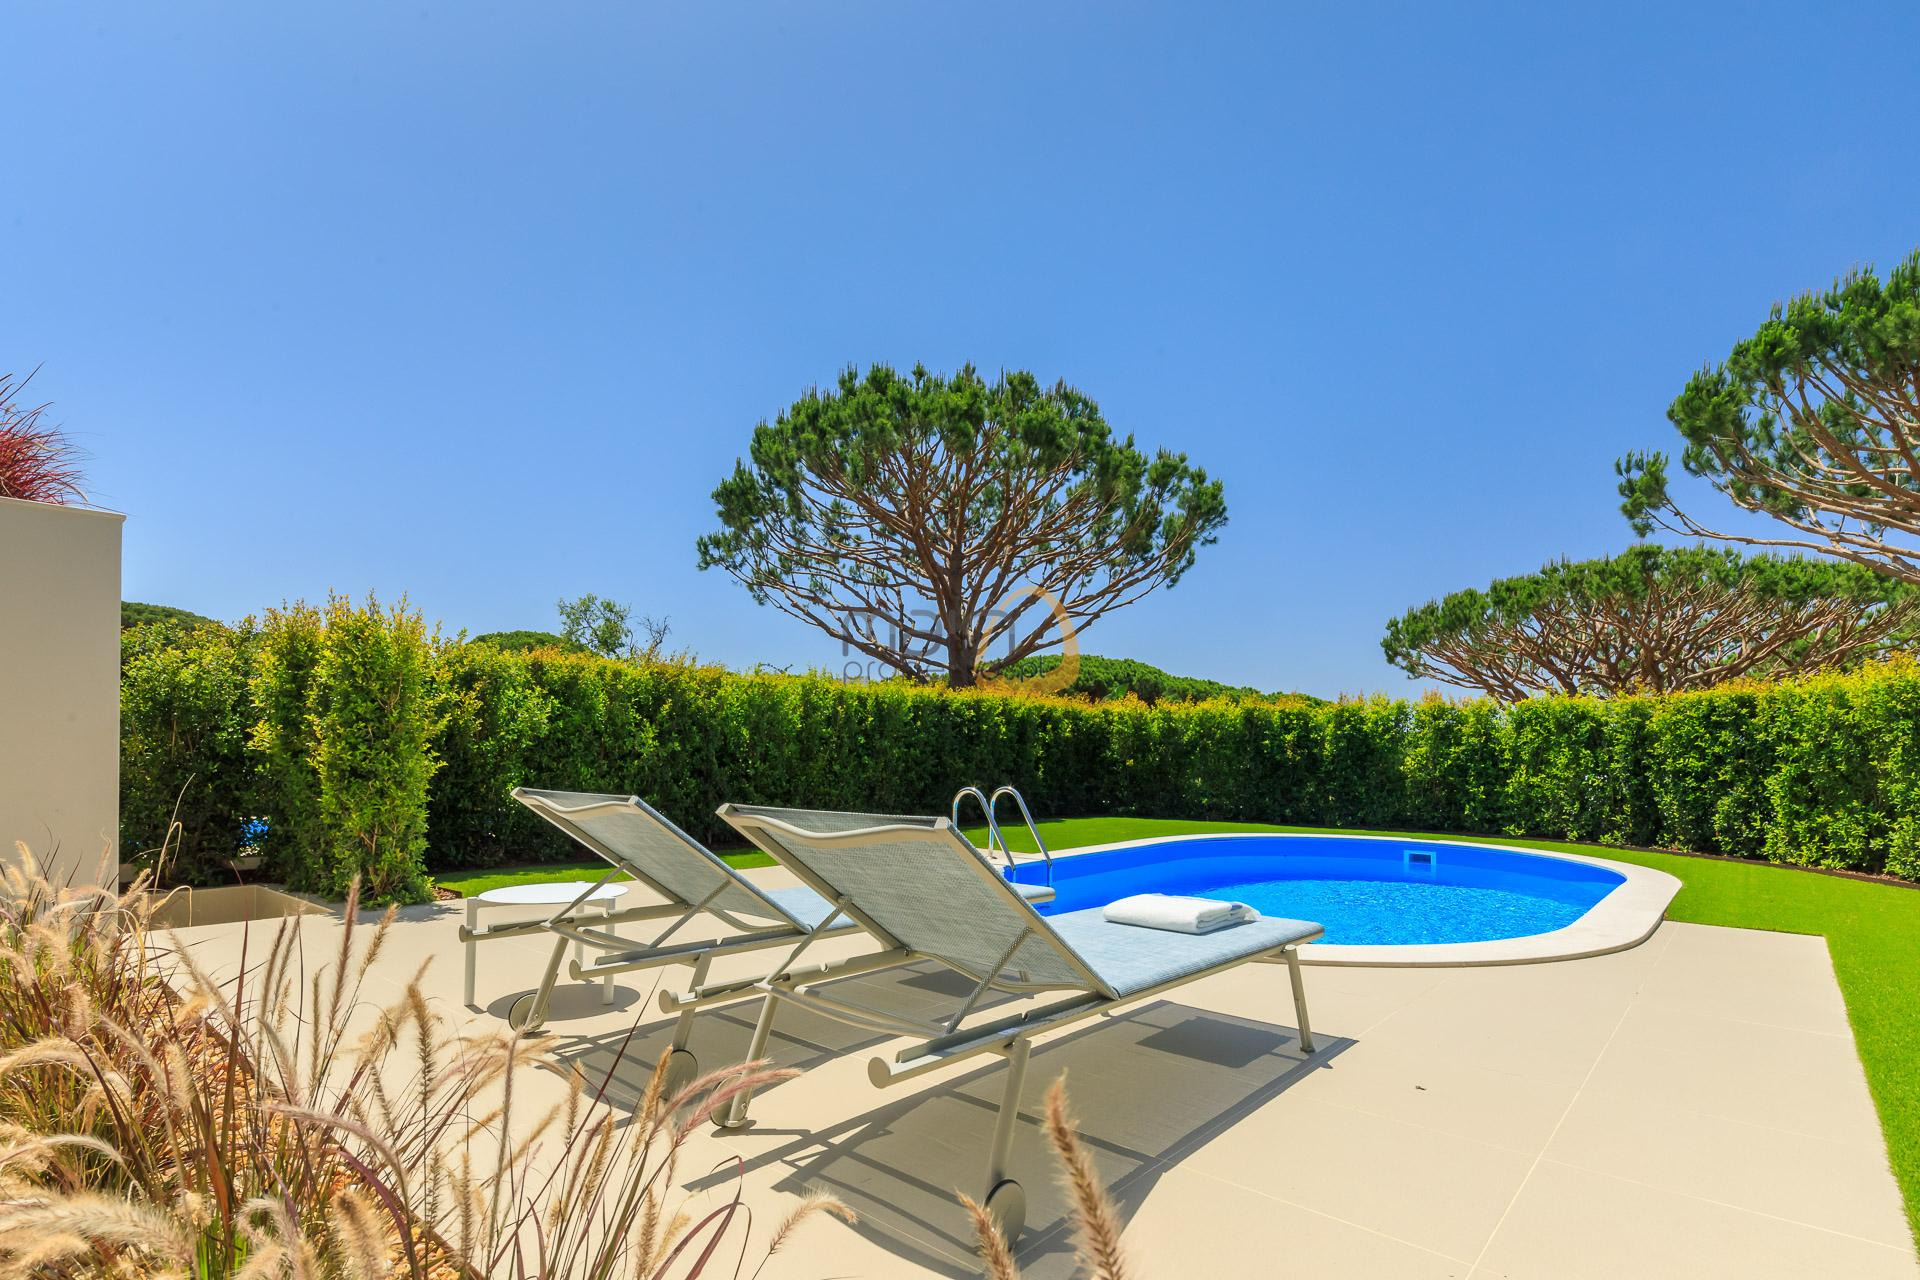 villa-in-vale-do-lobo-algarve-golden-triangle-portugal-property-real-estate-mainproperties-mp140vdl-1